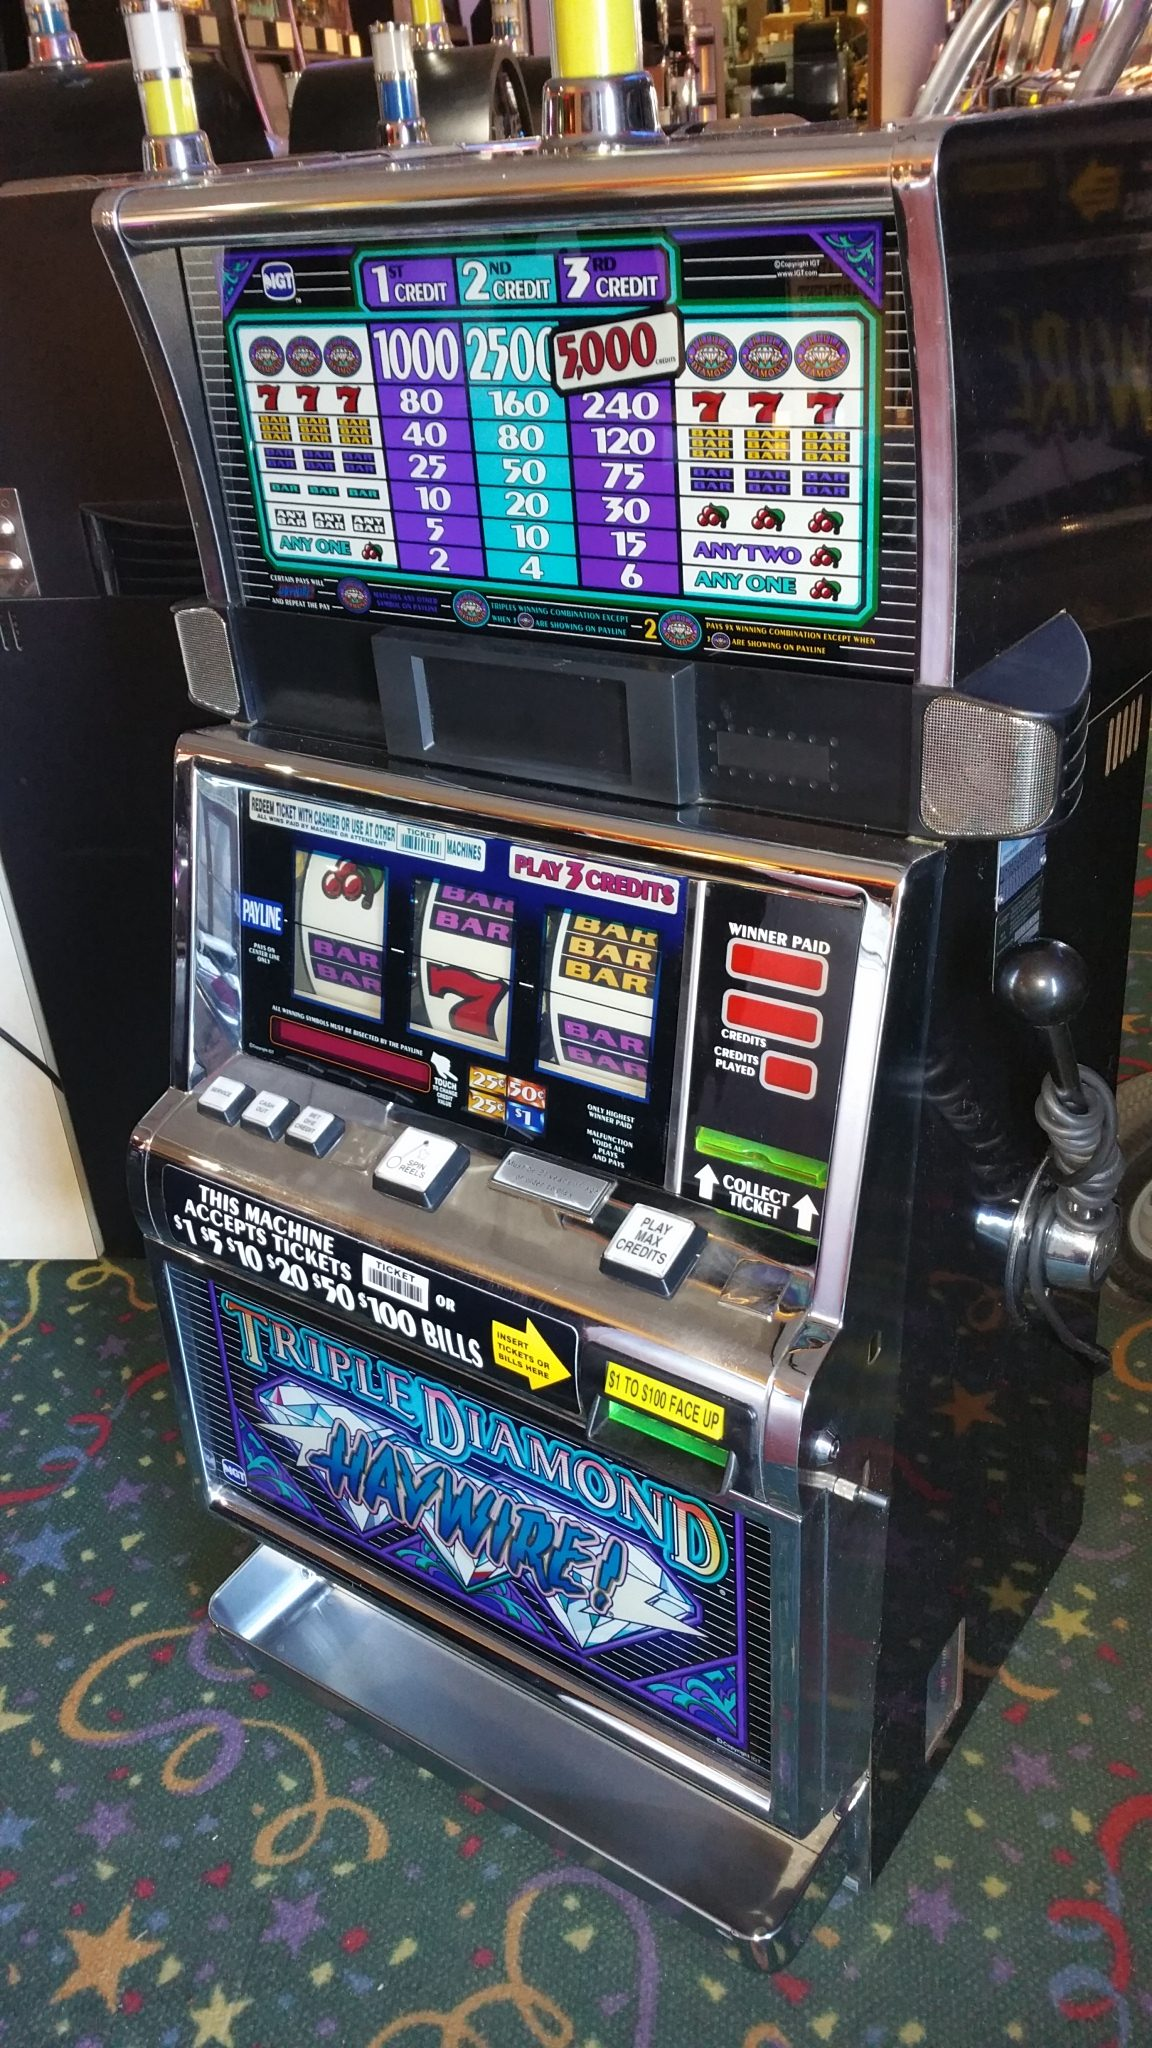 Igt slot machines west carrollton ohio eve online slots casino